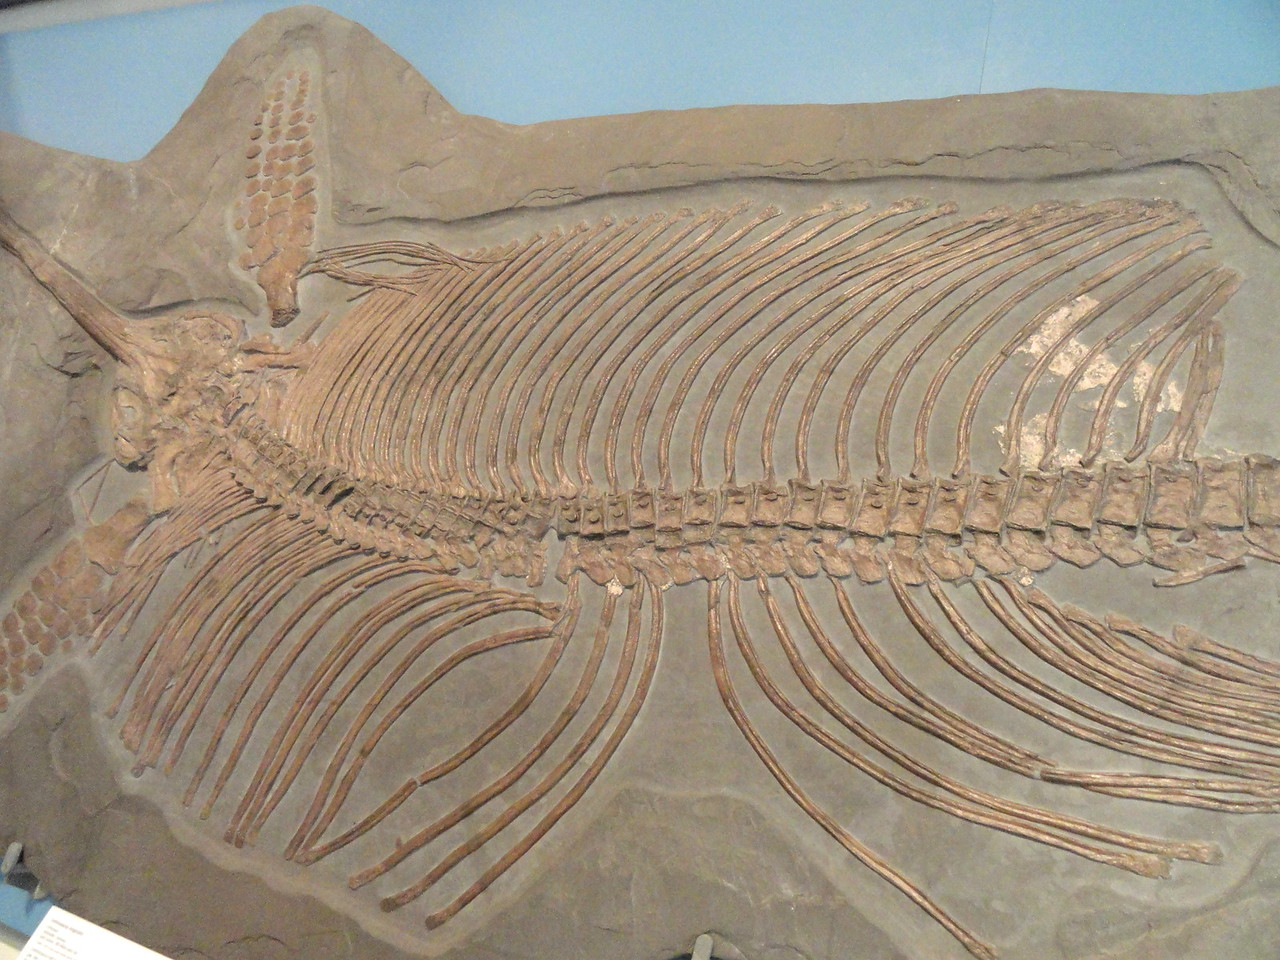 Eurhinosaurus, longirostris, detail, Holzmaden, Germany, Early, Jurassic, Royal, Ontario, Museum,